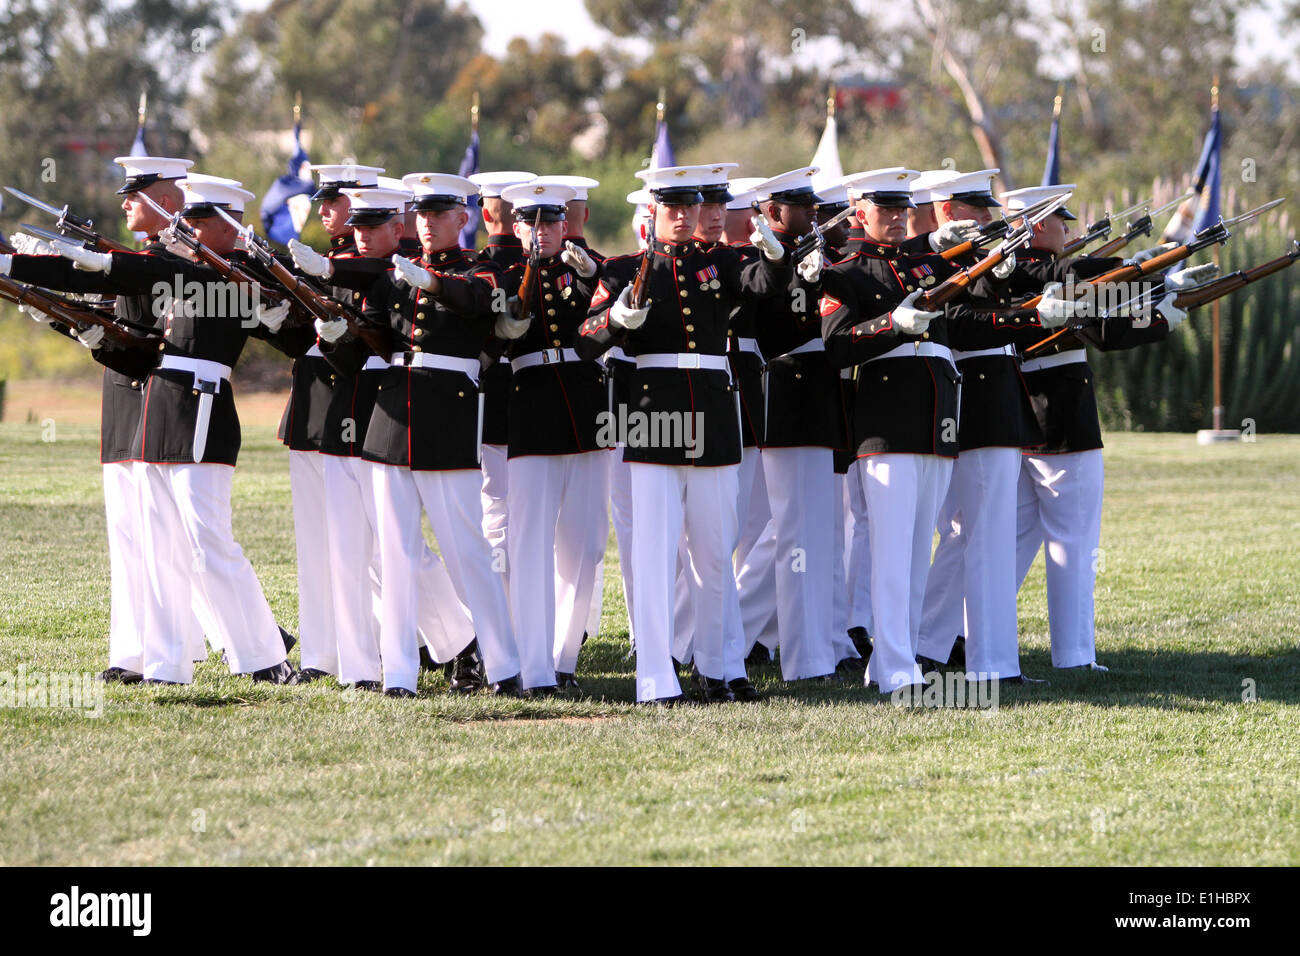 The U.S. Marine Corps Silent Drill Platoon performs during a battle color ceremony at Marine Corps Air Station Miramar, Stock Photo